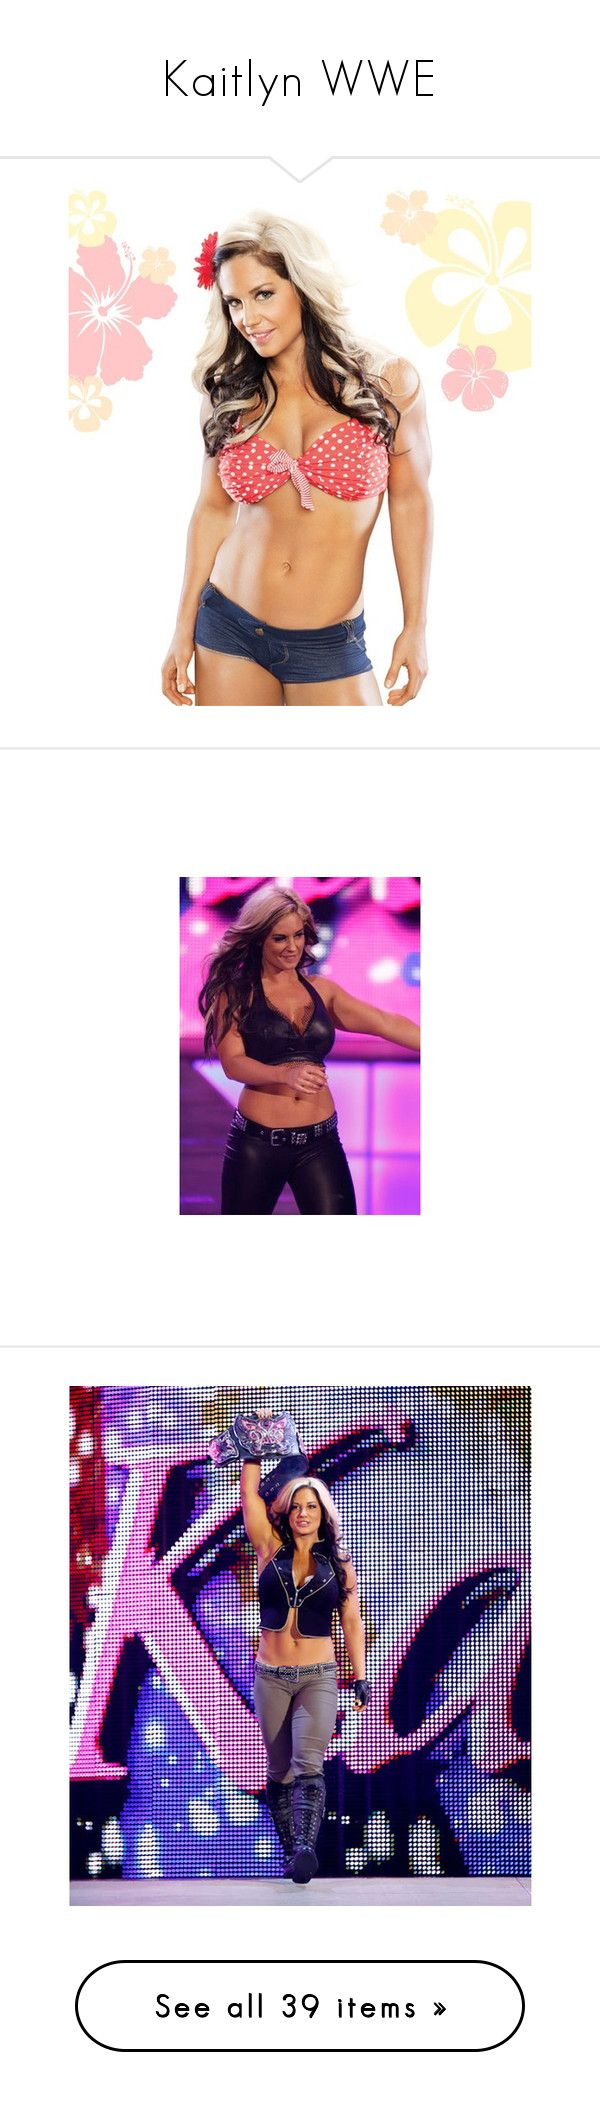 """""""Kaitlyn WWE"""" by thefuturemrsambrose ❤ liked on Polyvore featuring wwe, kaitlyn, wrestling, divas, intimates, hosiery, socks, people, home and home decor"""